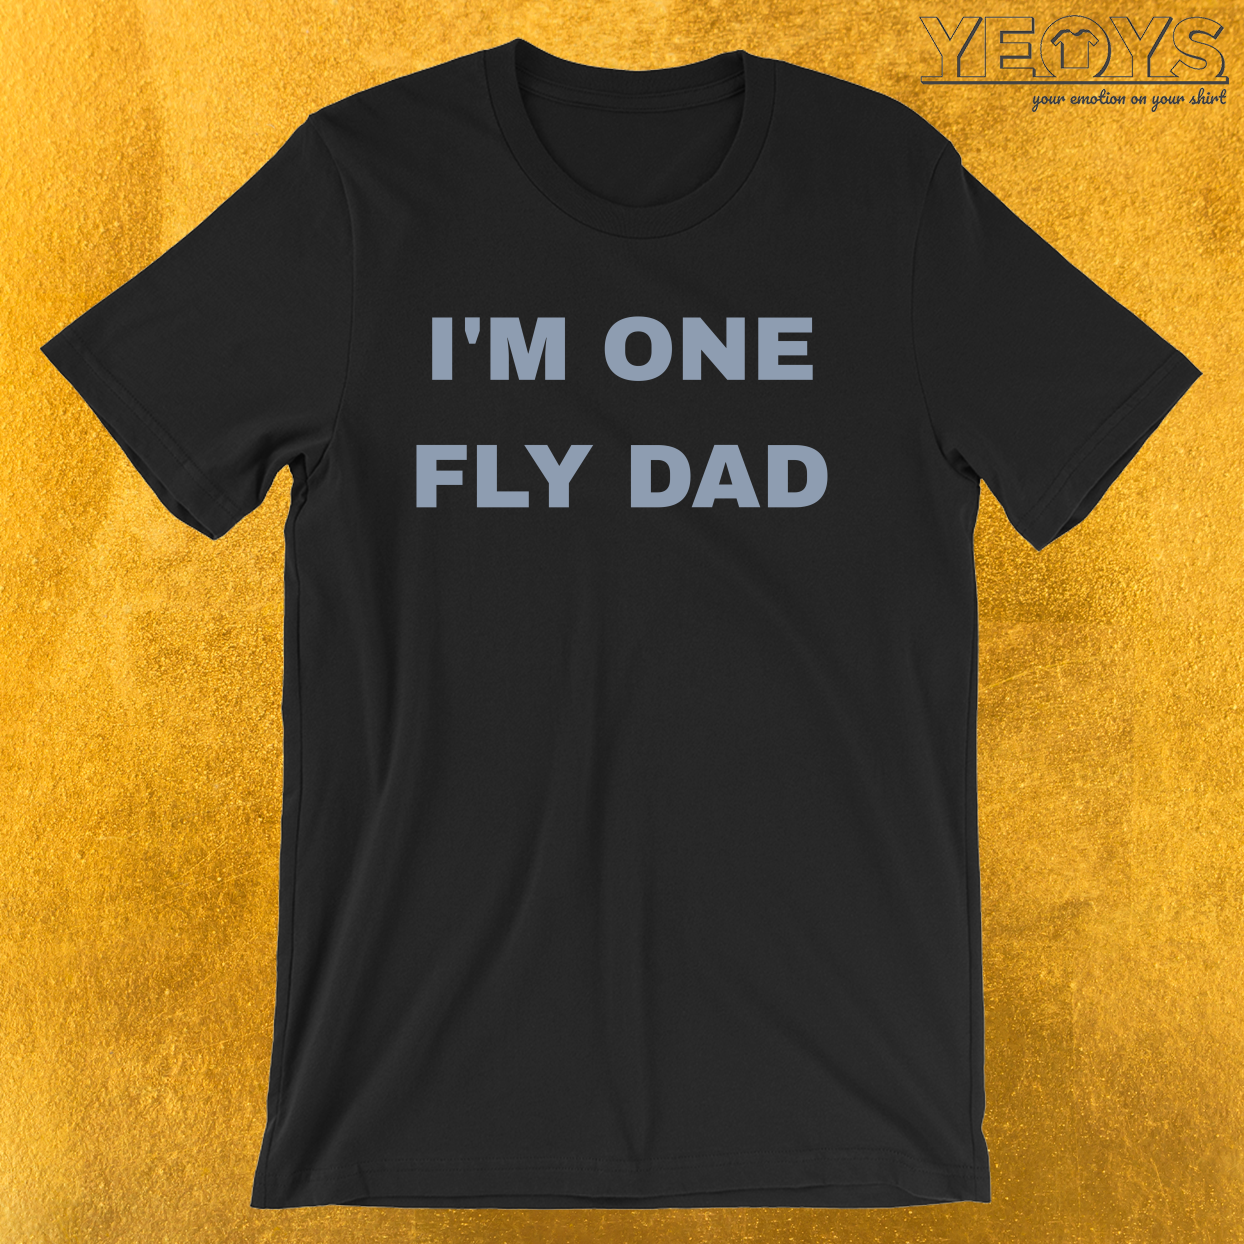 I'm One Fly Dad – Fly Fishing Tee